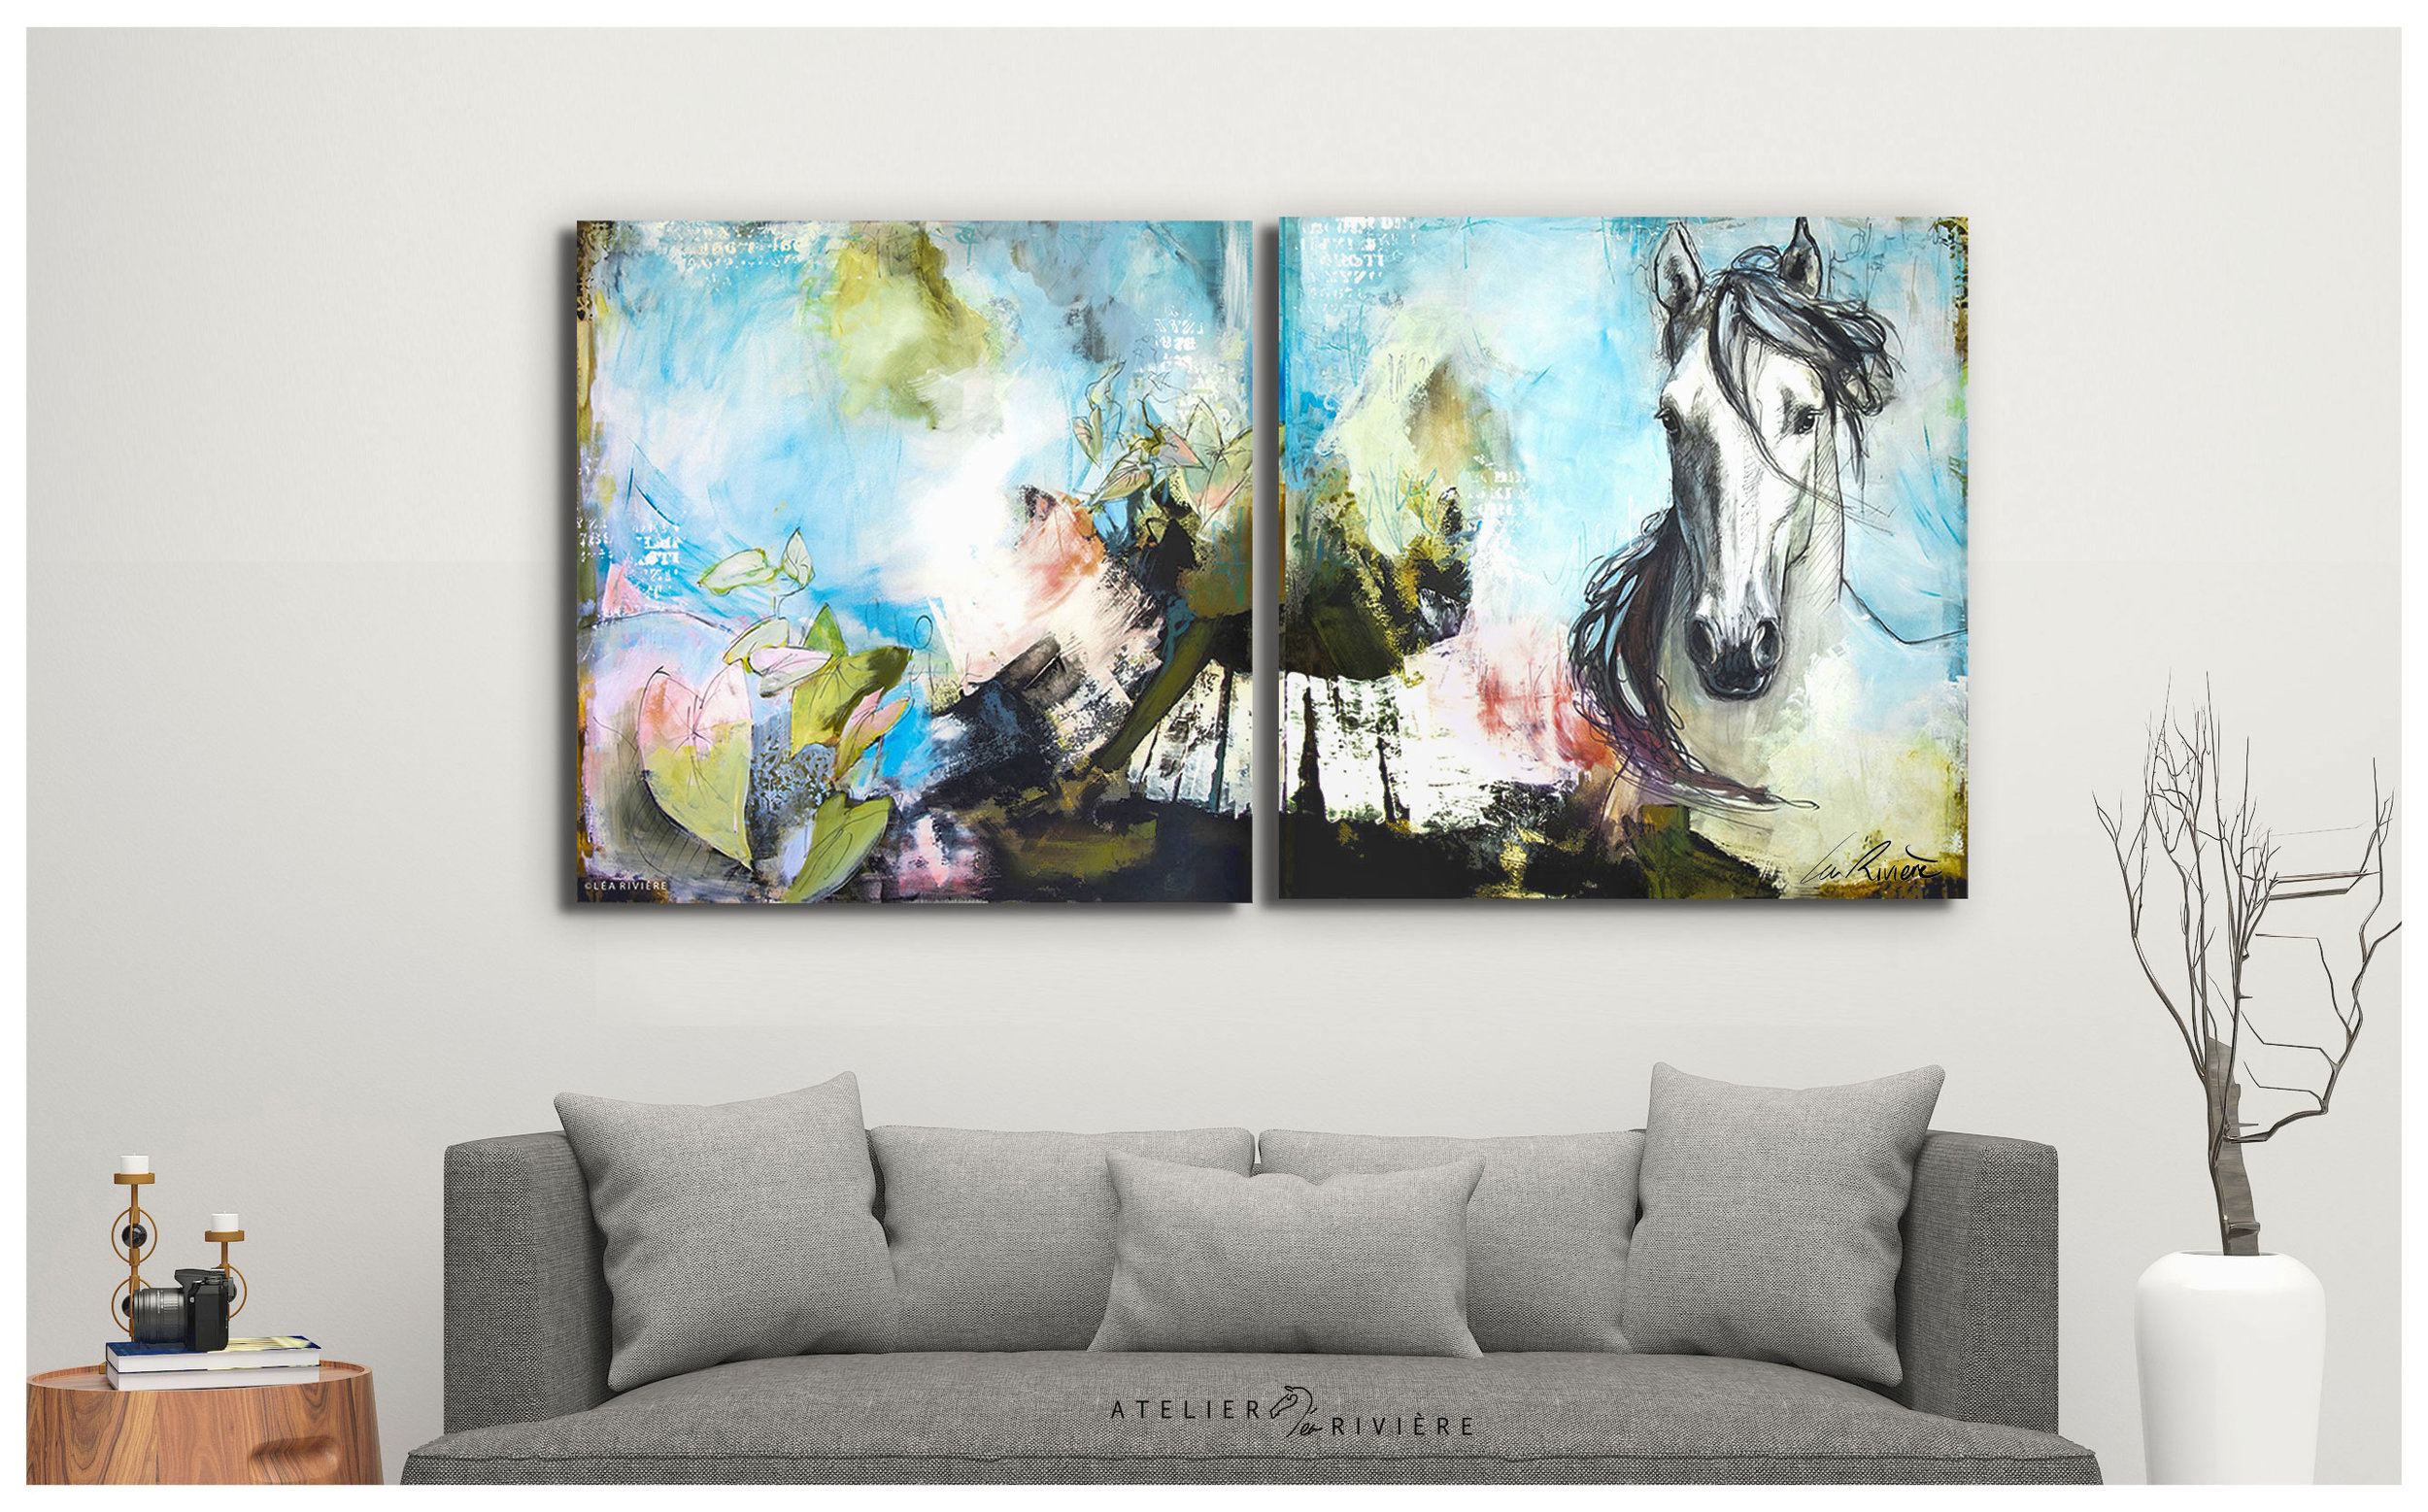 """Dance"" Binôme(122x244cm)  Disponible"